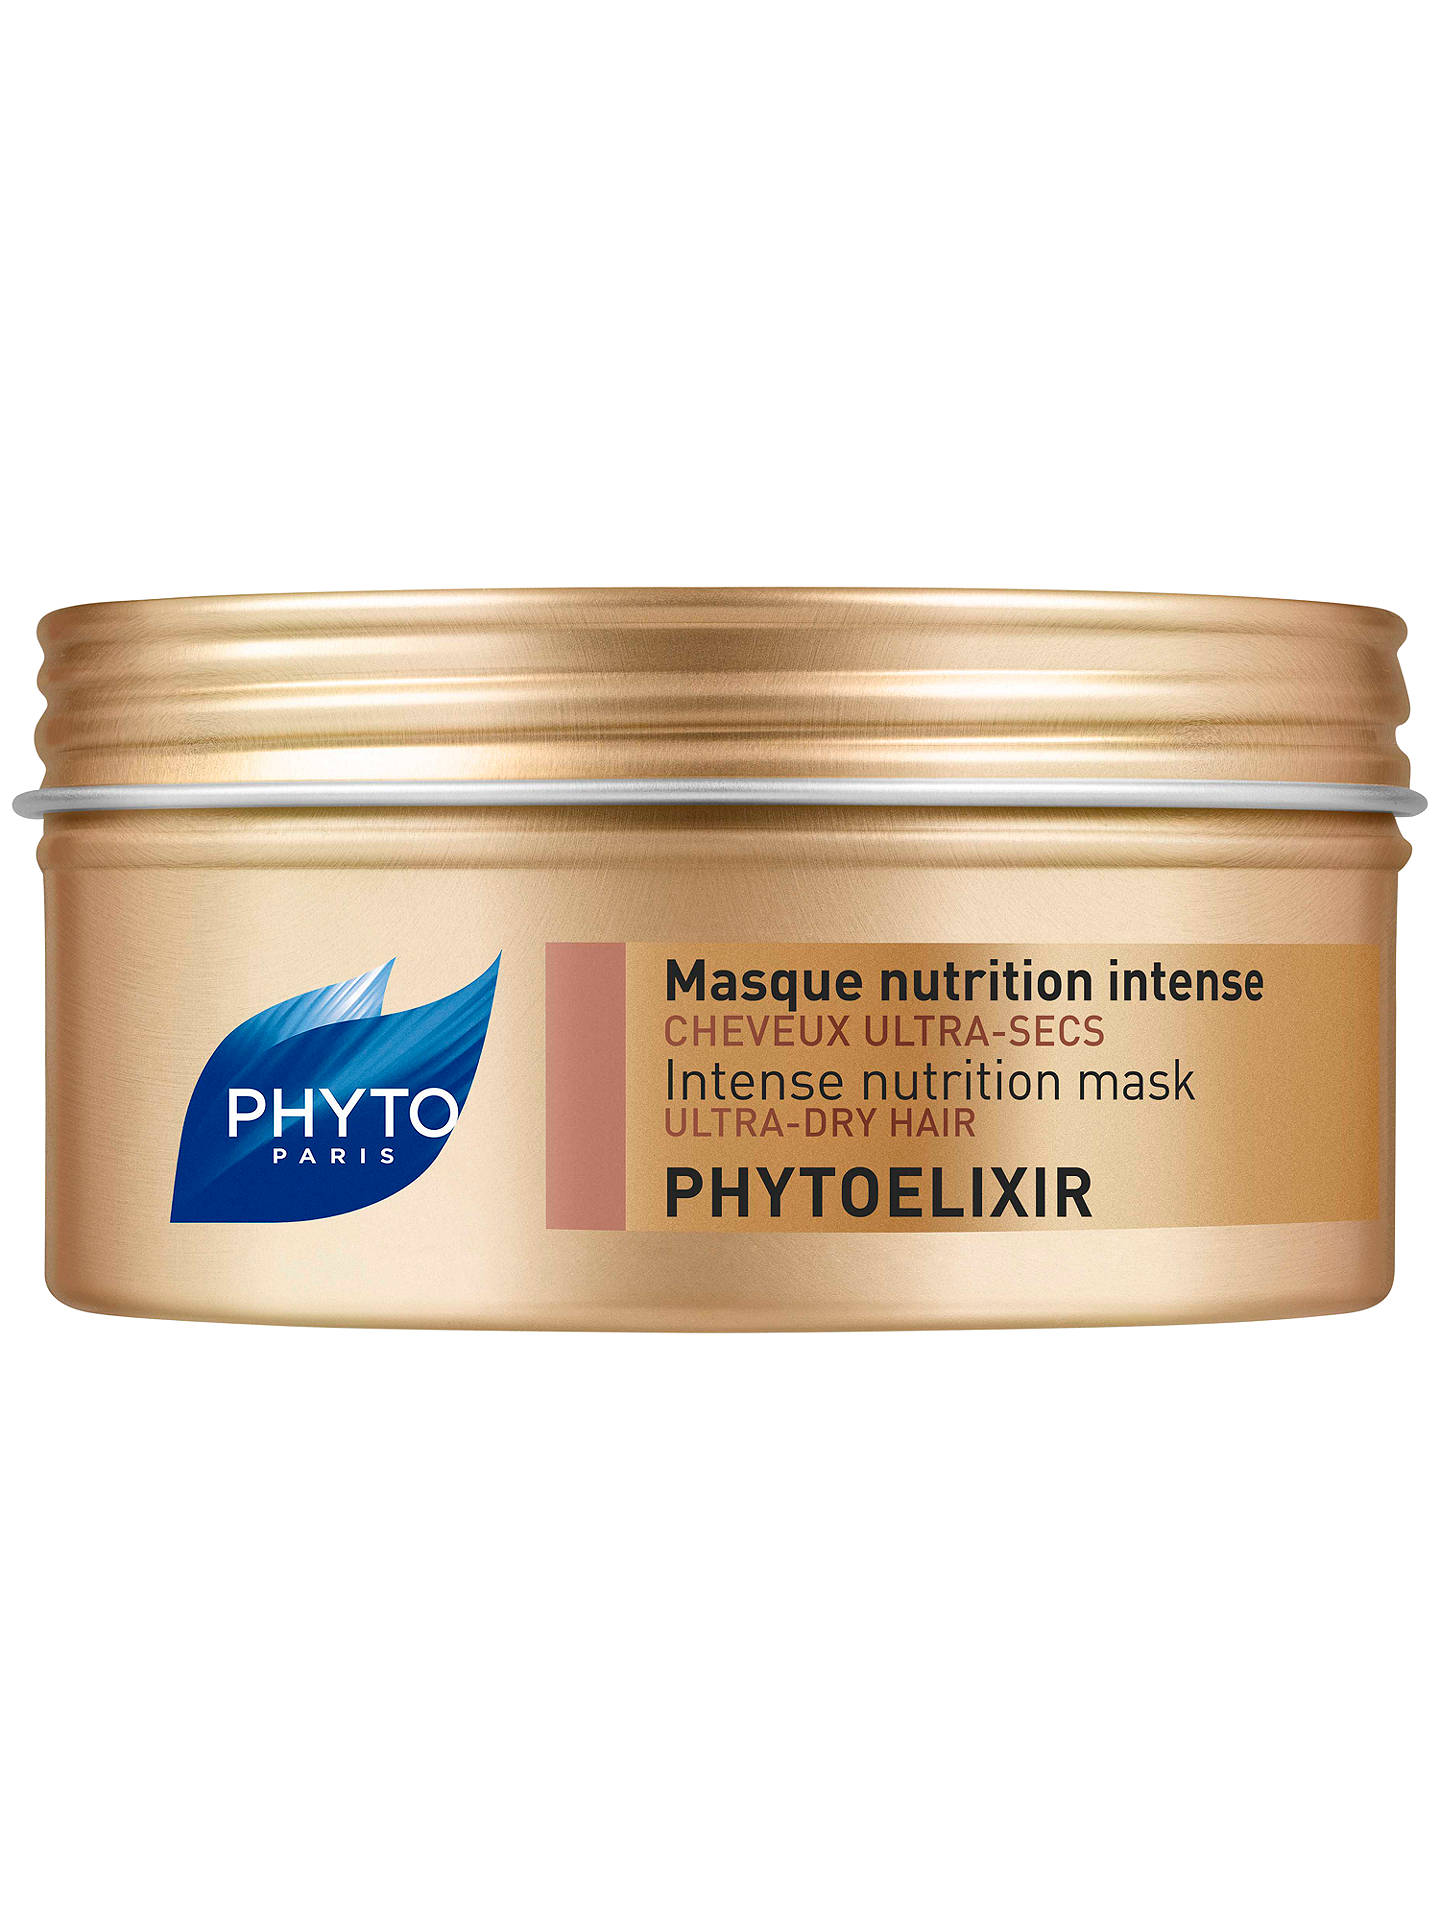 Buy Phyto Phytoelixir Intense Nutrition Mask, 200ml Online at johnlewis.com